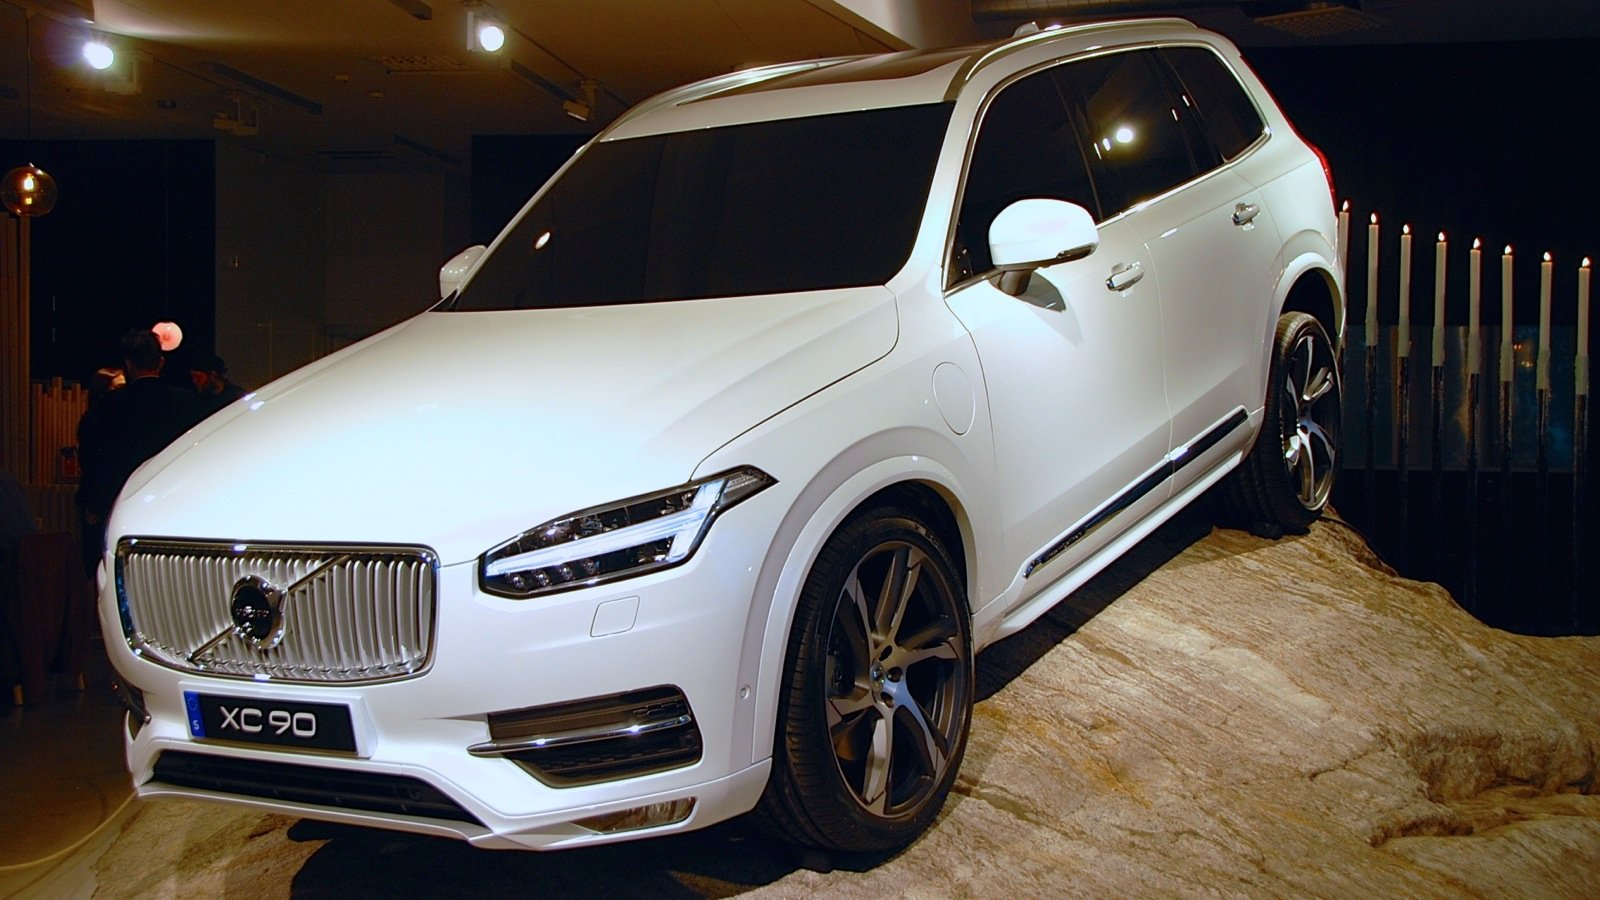 2015 Volvo XC90 details revealed - photos | CarAdvice